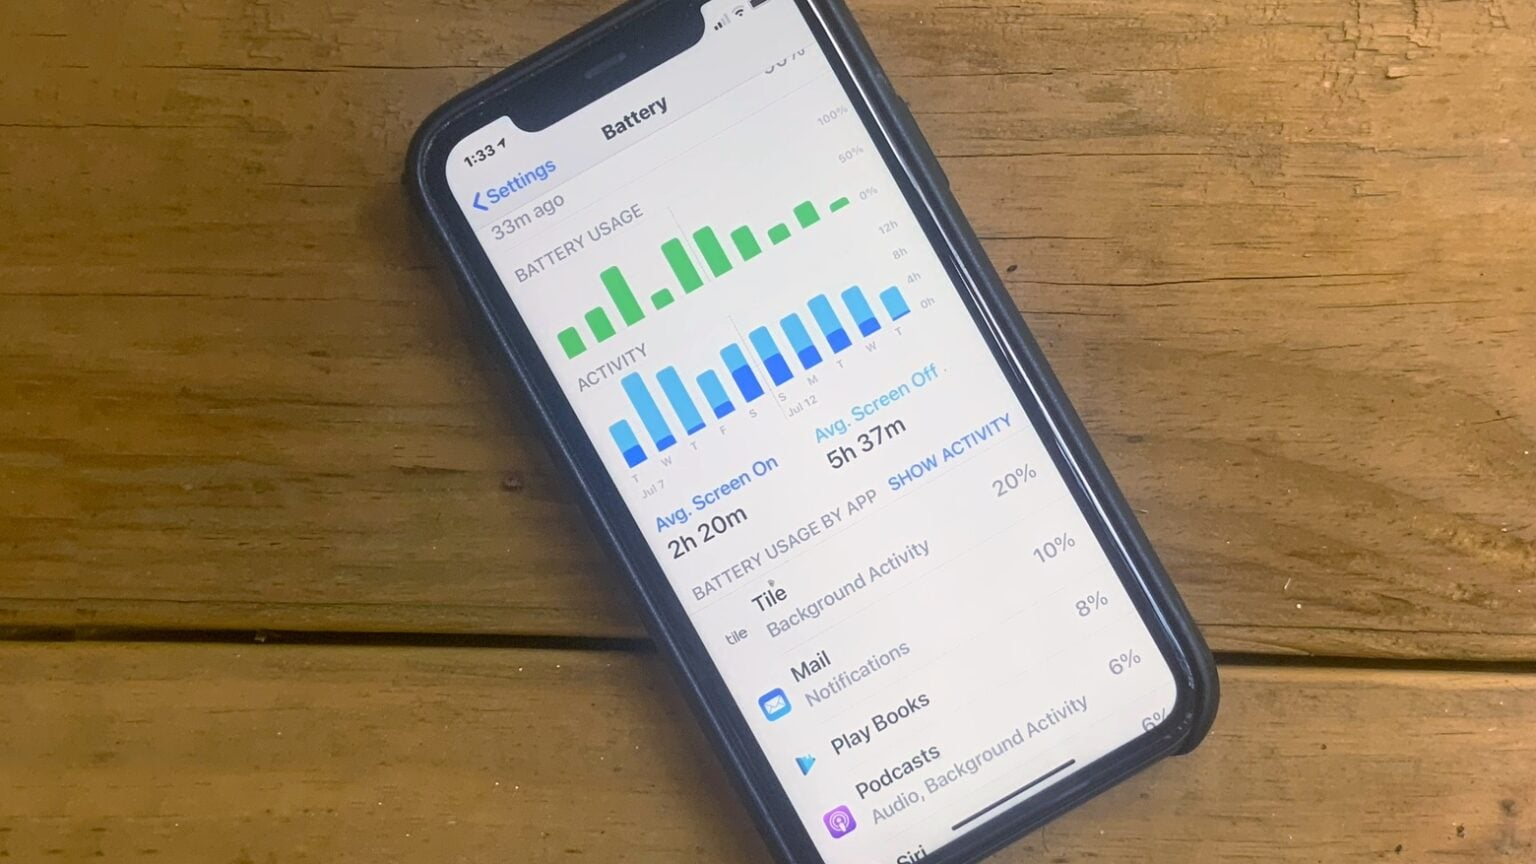 iOS 13 battery life eroded. But iOS 14 offers better.